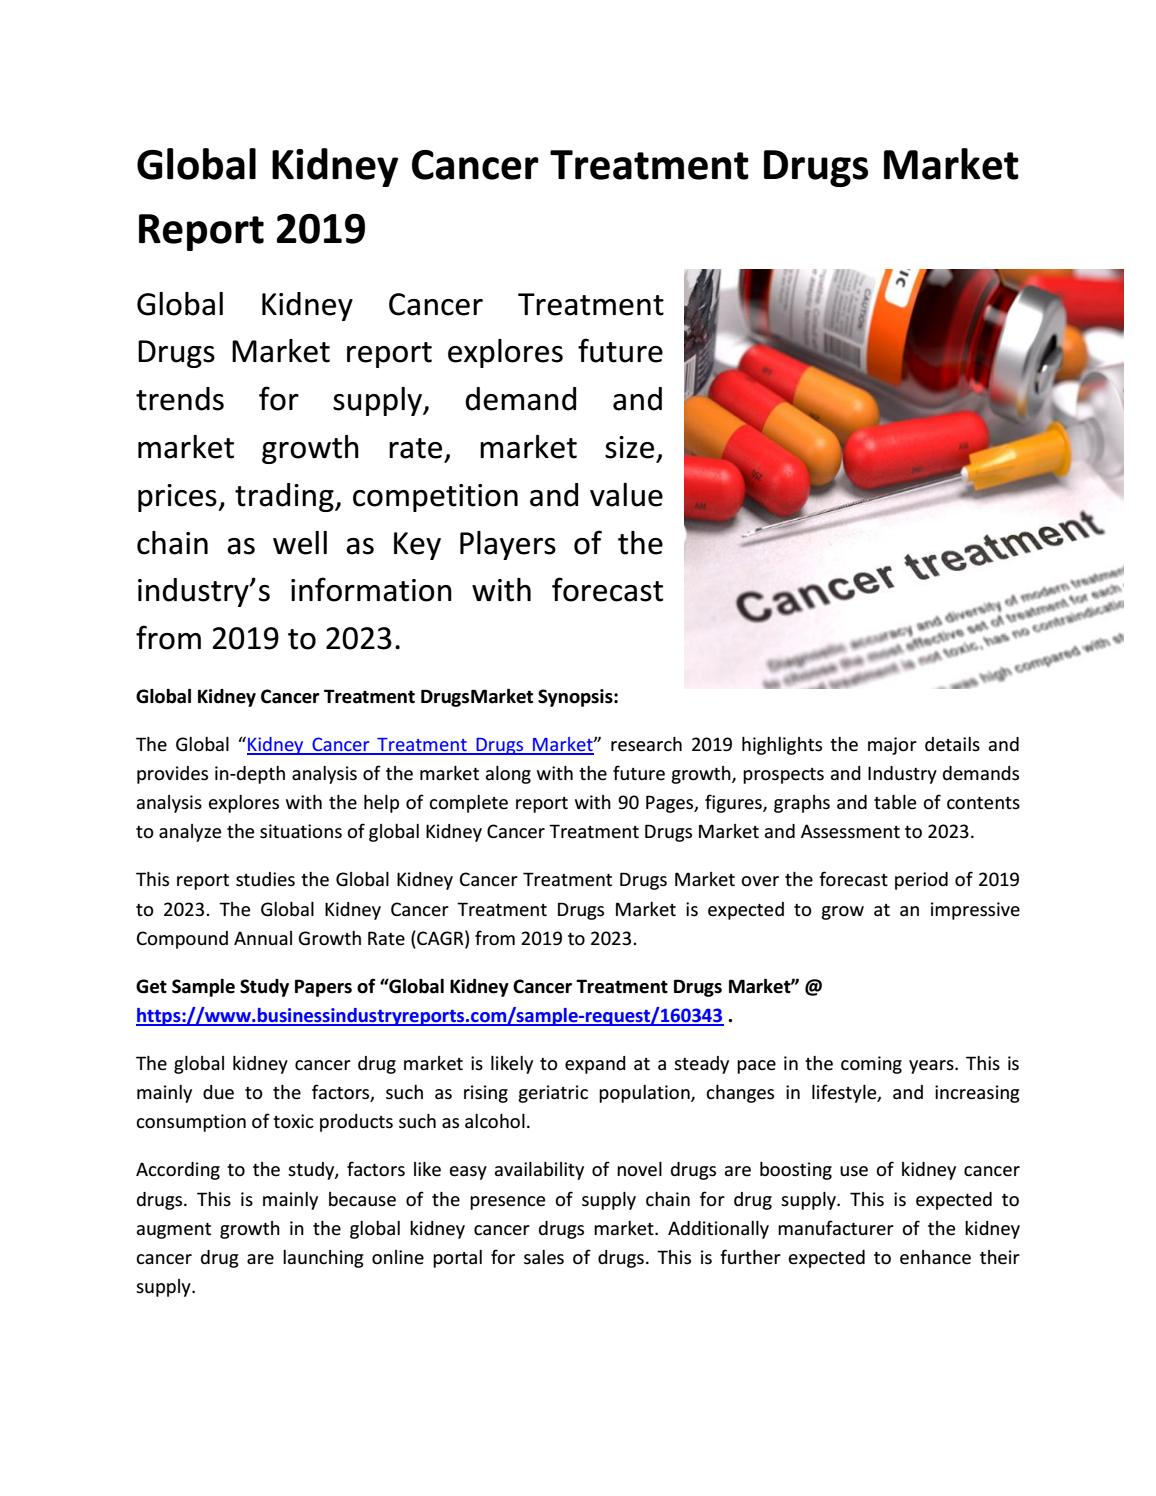 Global Kidney Cancer Treatment Drugs Market Future Forecast 2019 2023 By Businessreports26 Issuu